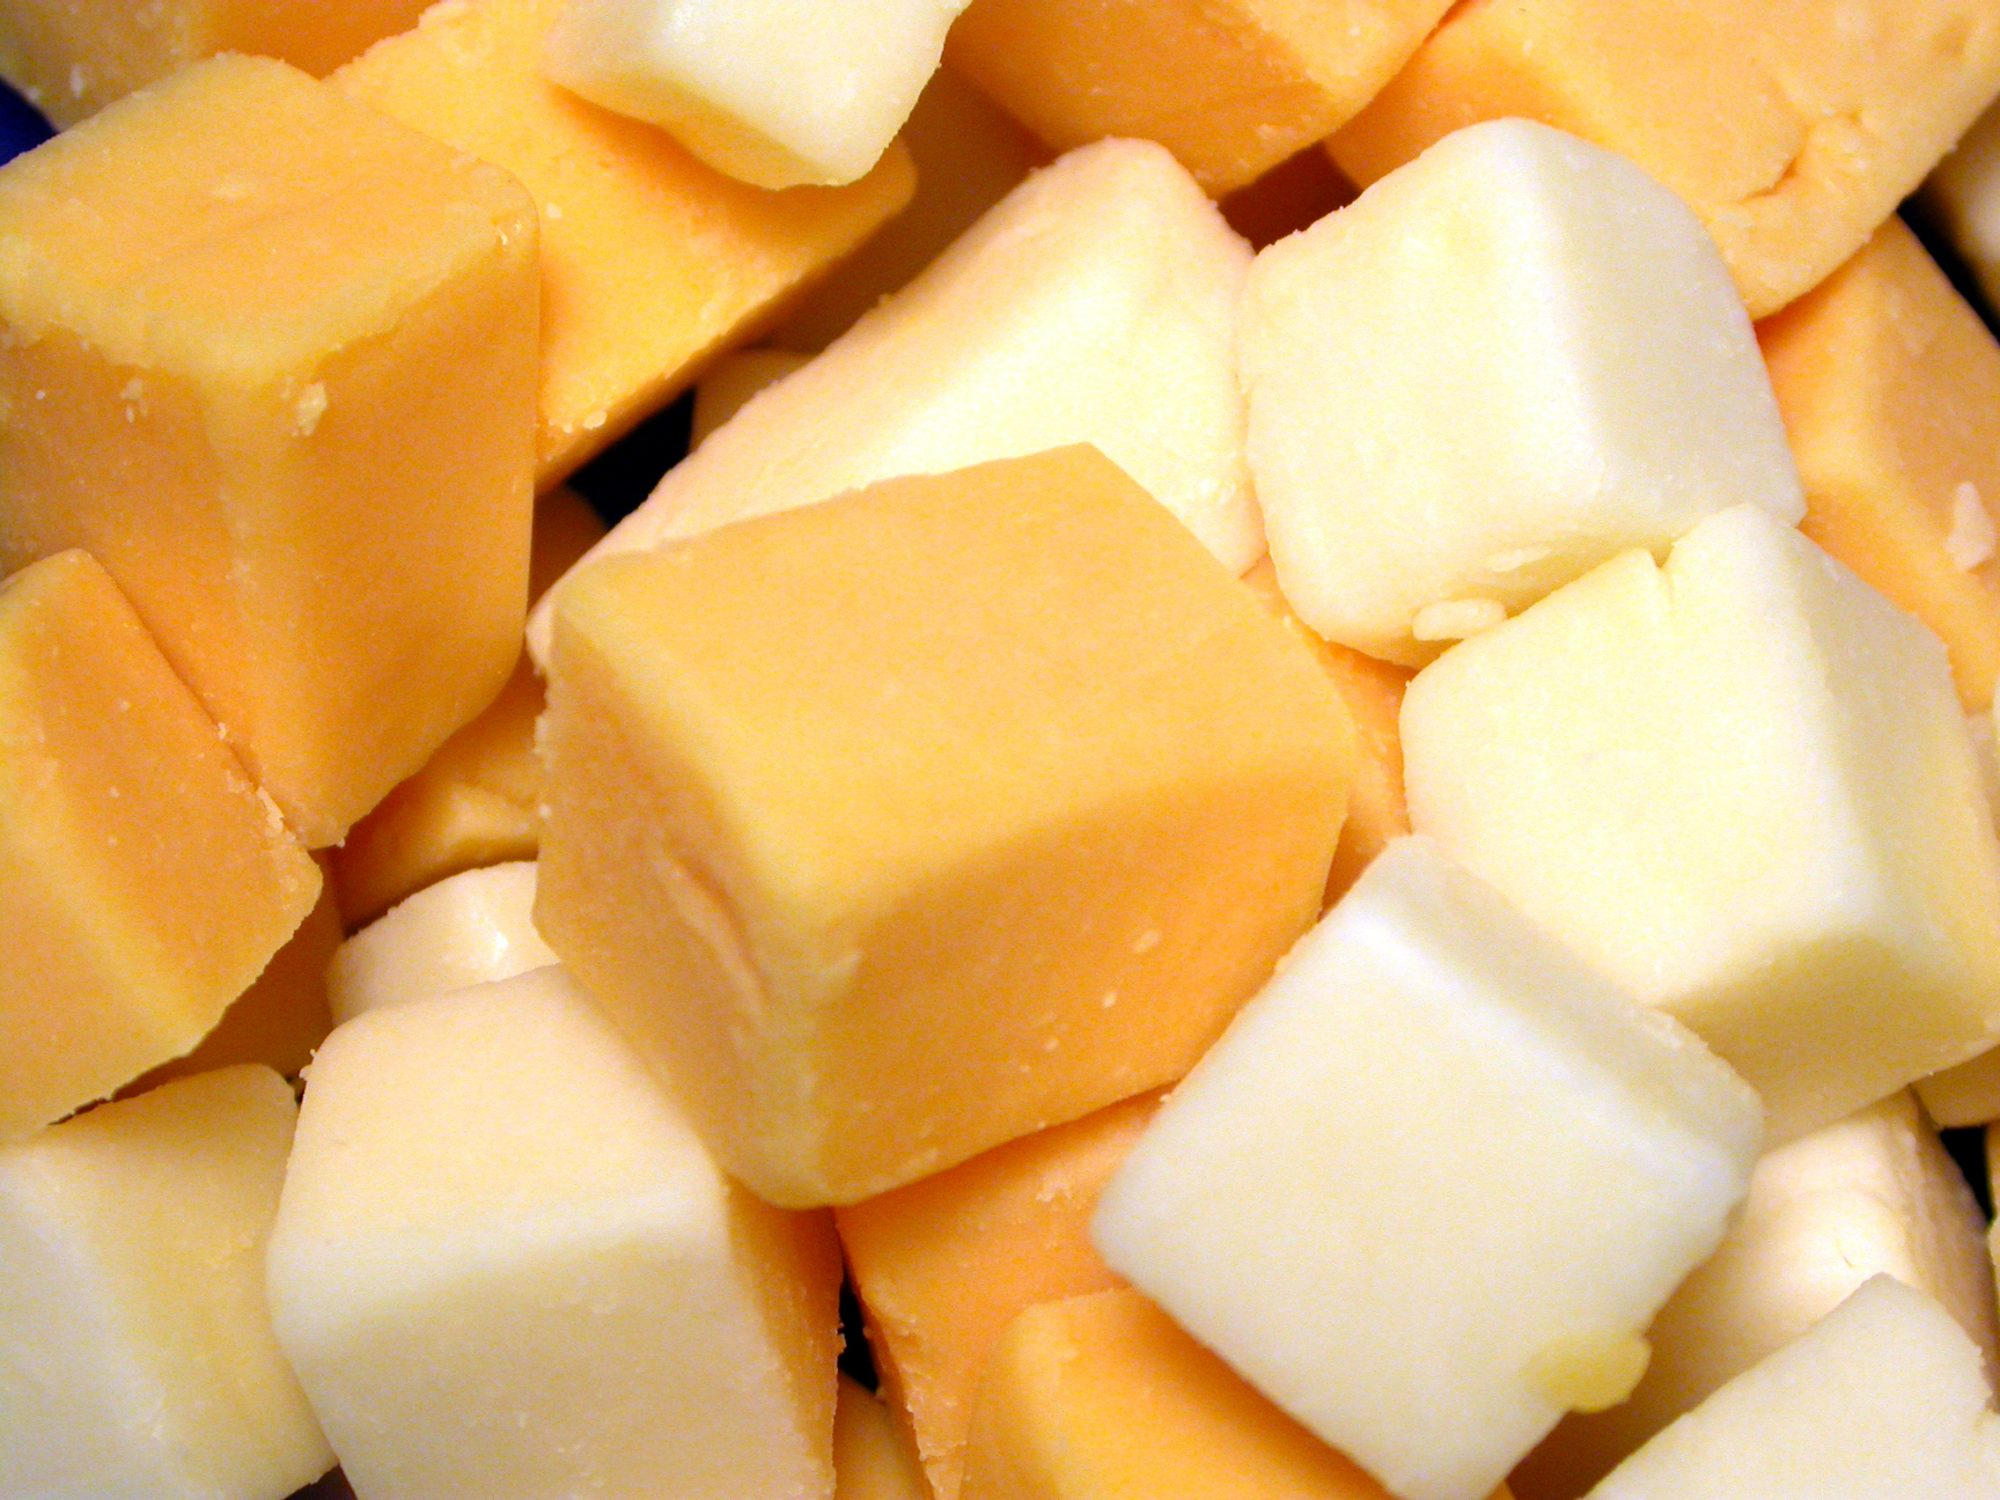 White and Orange Cheddar Cheese